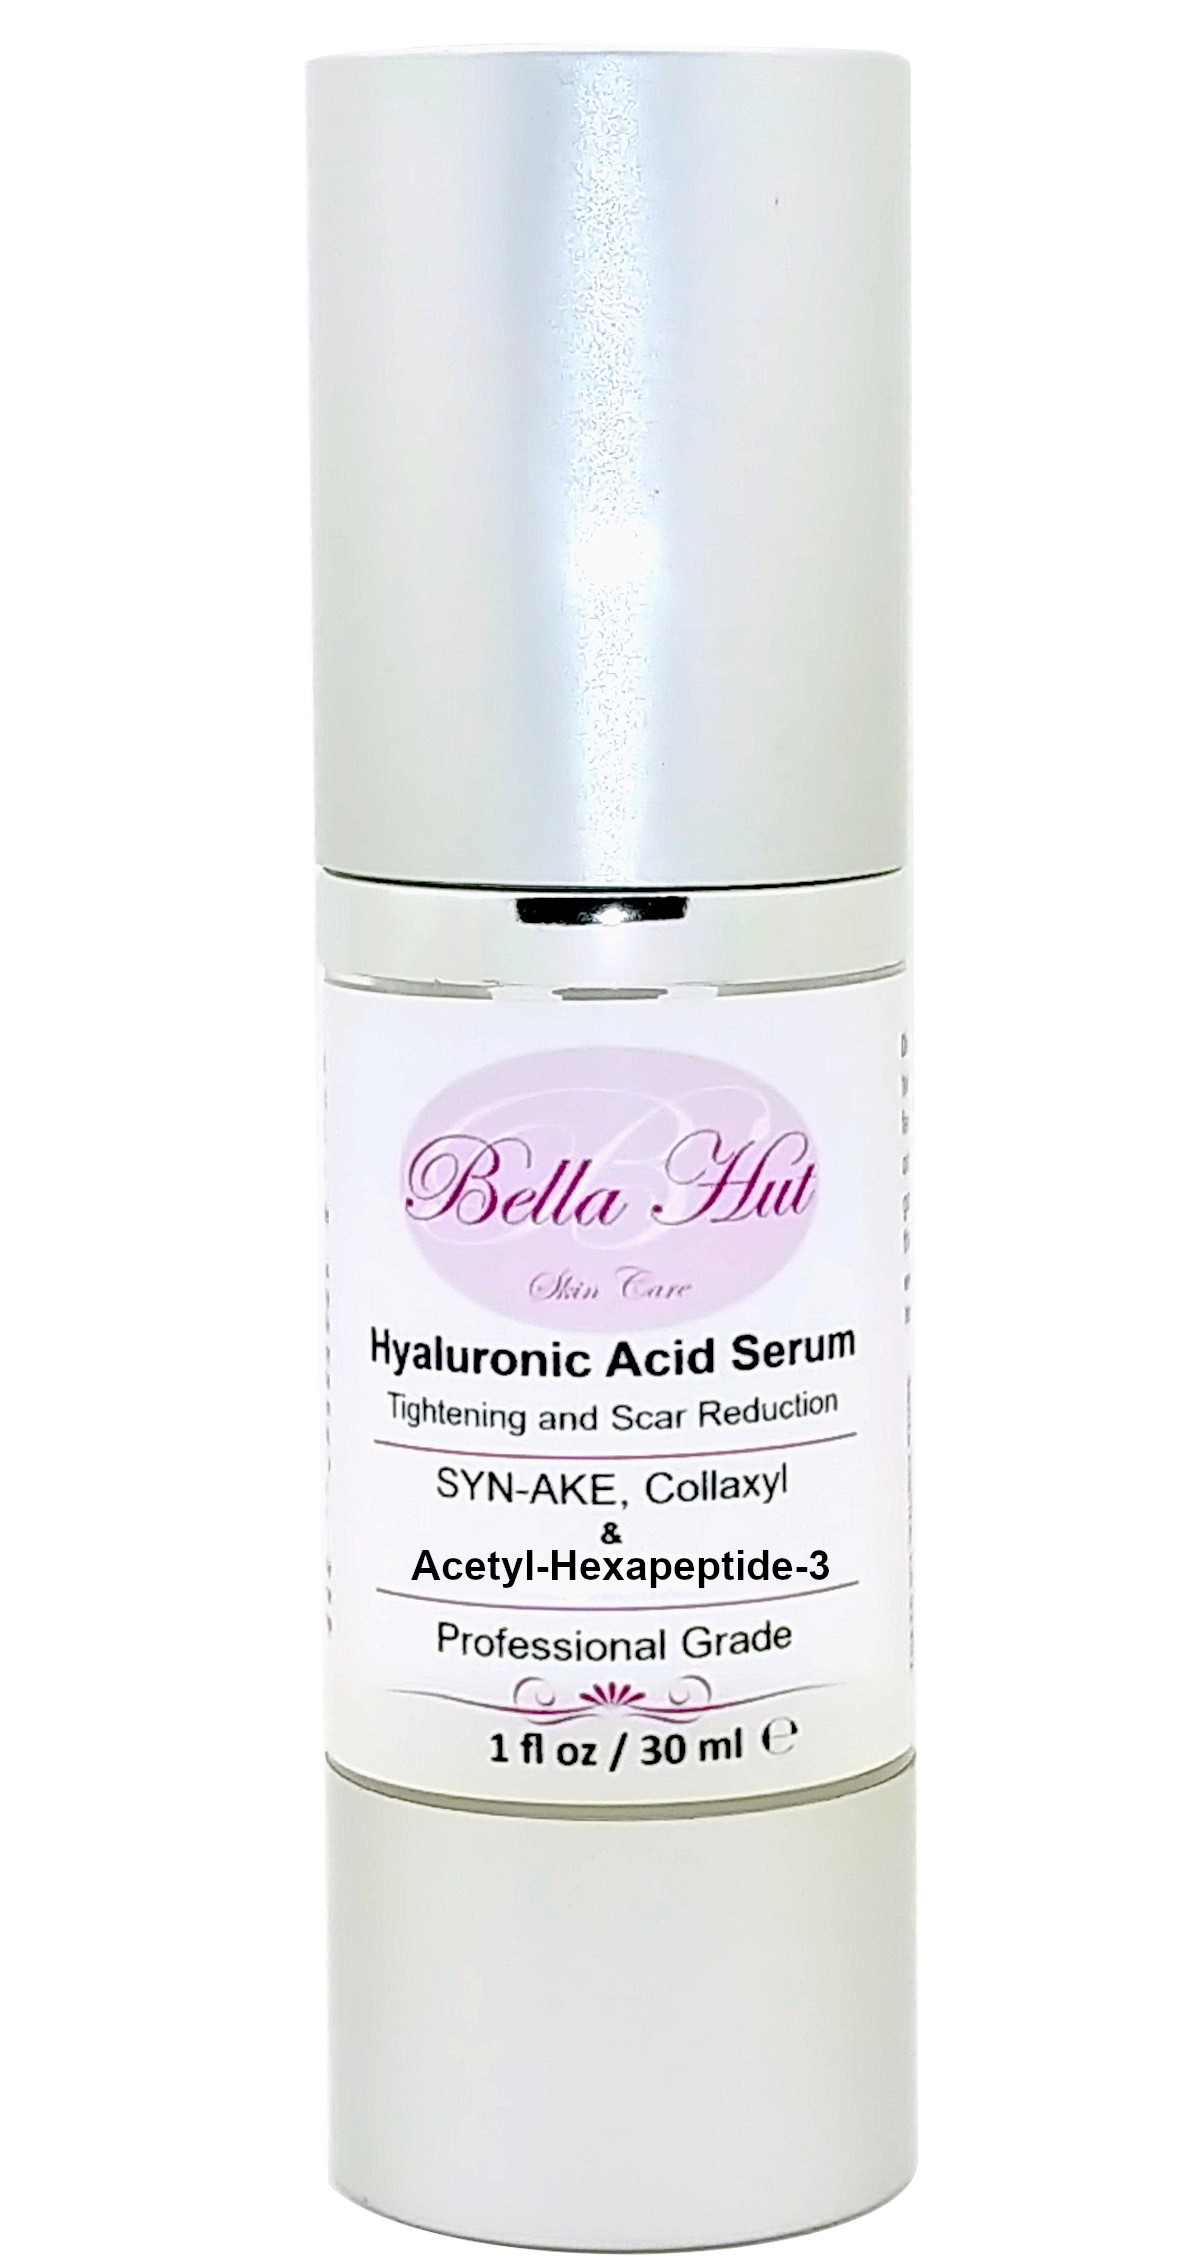 100% Hyaluronic Acid Serum with Syn-Ake Collaxyl and Acetyl hexapeptide-3